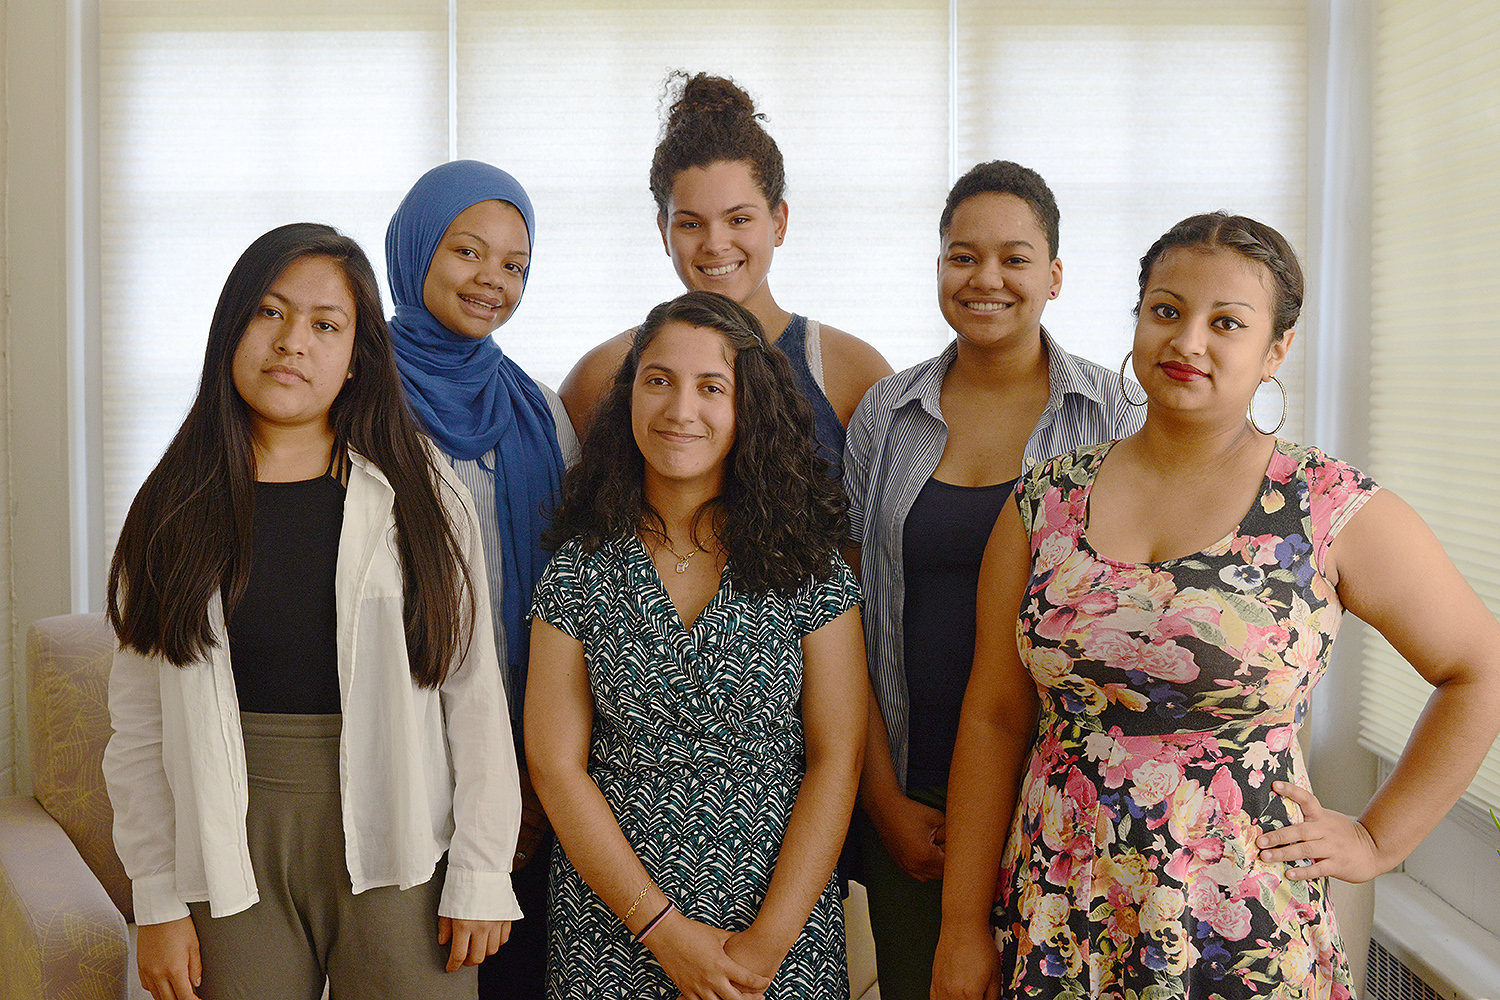 Pictured, from left, are Delia Tapia '18, Alicia Strong '18, Aura Ochoa '17, Iryelis Lopez '17 (back row), Paige Hutton '18 and Aleyda Robles '18.